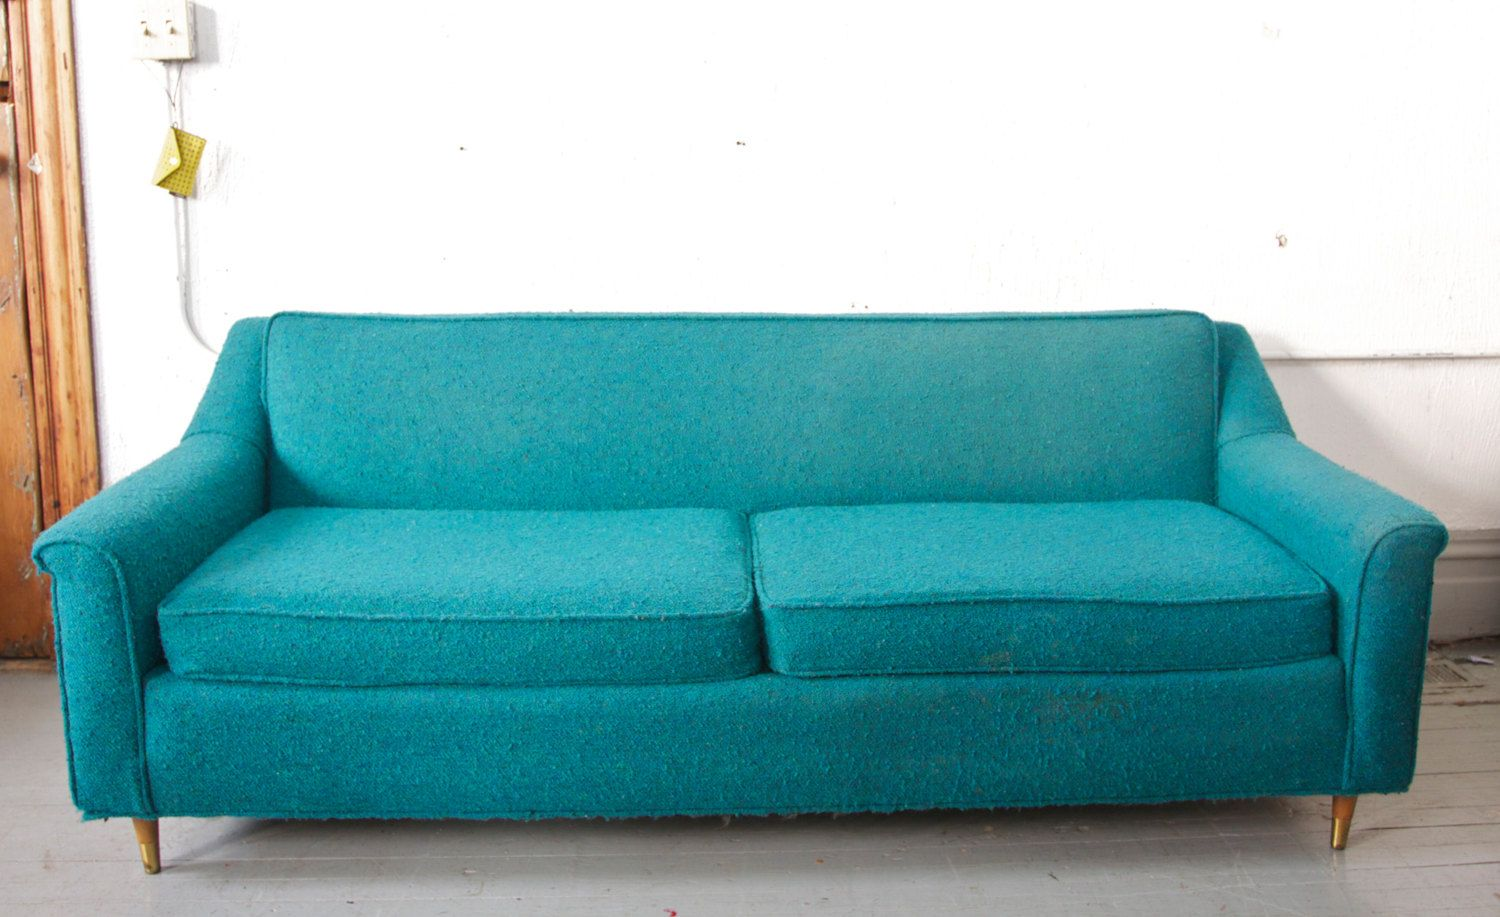 Mid Century Modern Teal Turquoise Sofa Couch Loveseat